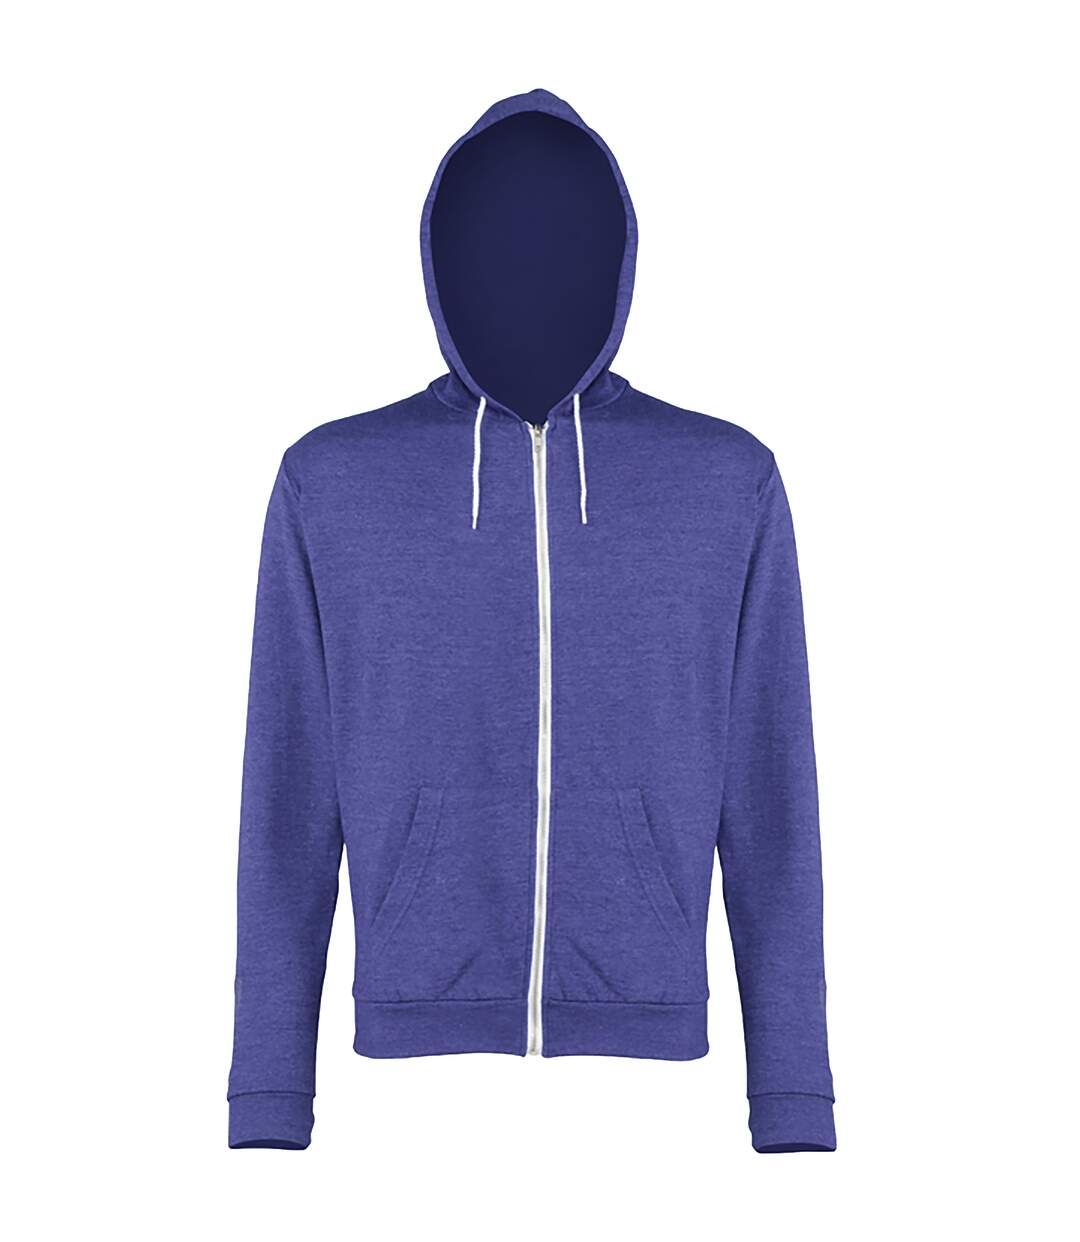 Awdis Mens Heather Lightweight Hooded Sweatshirt / Hoodie / Zoodie (Royal Heather) - UTRW184